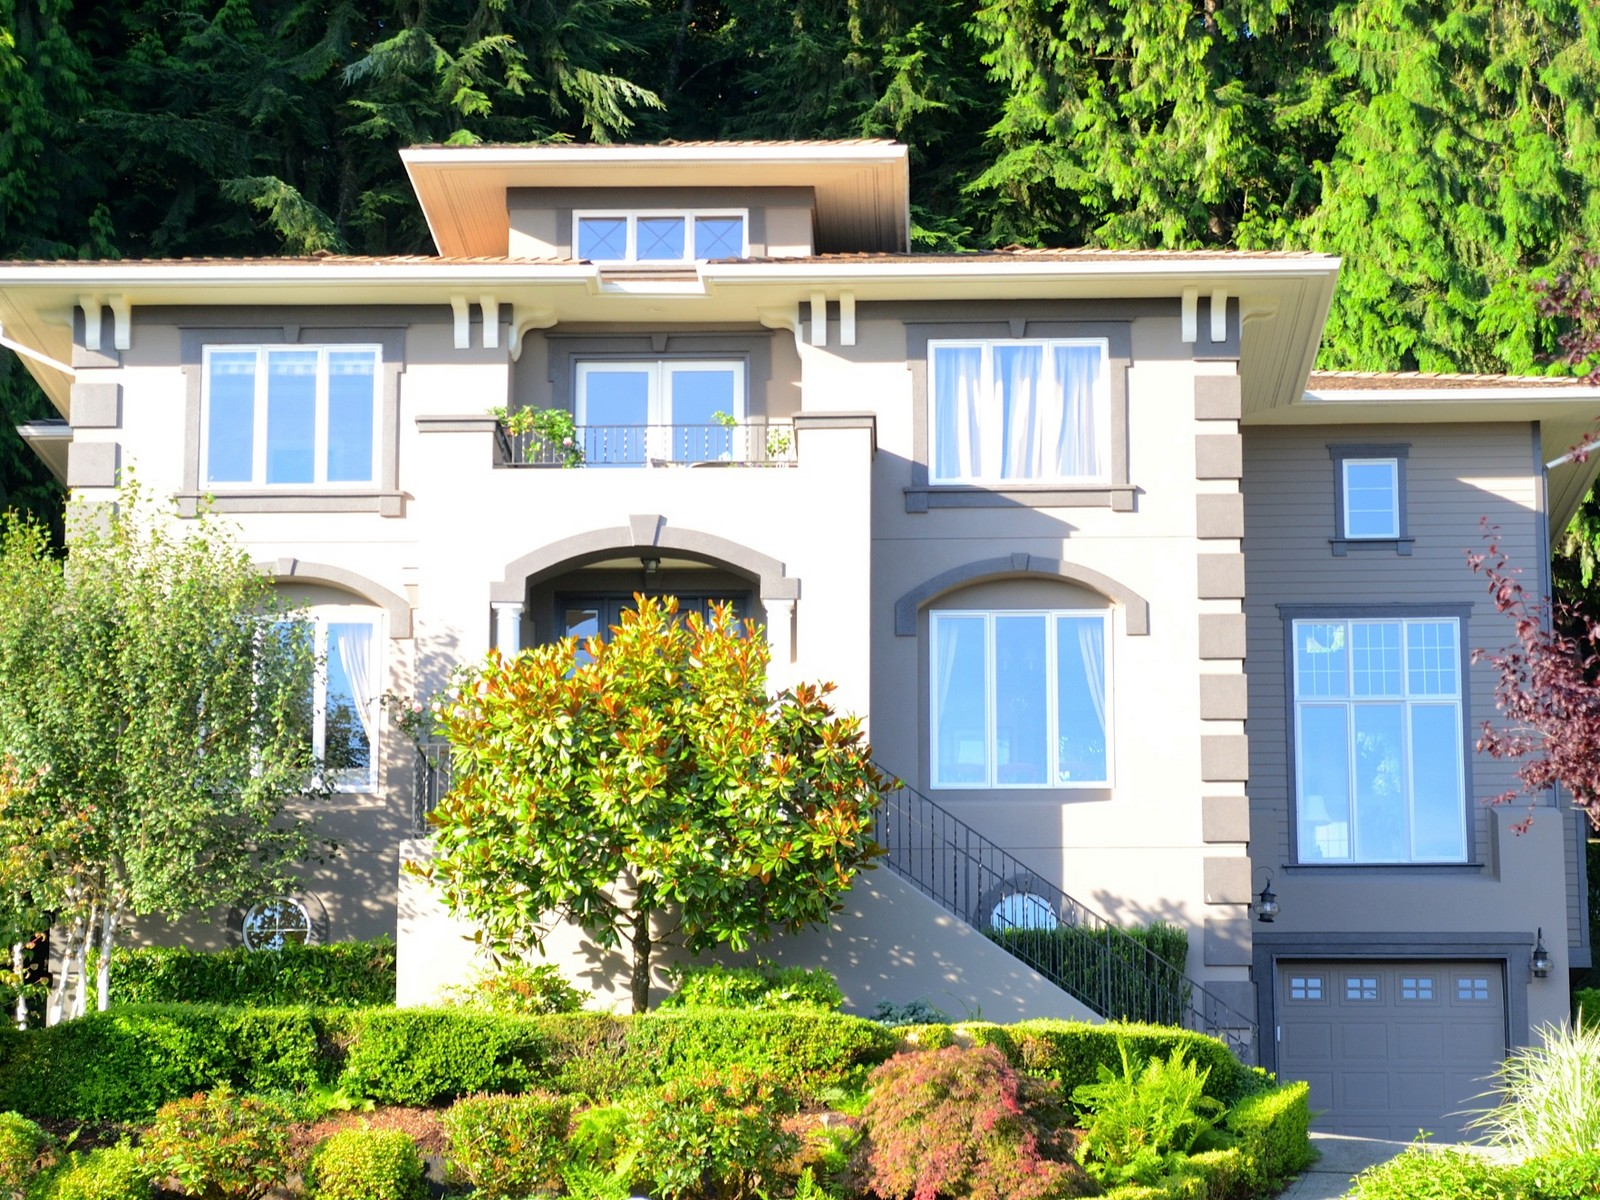 Single Family Home for Sale at Mediterranean Inspired Home with Views 18477 NW Village Park Dr Montreux, Issaquah, Washington 98027 United States